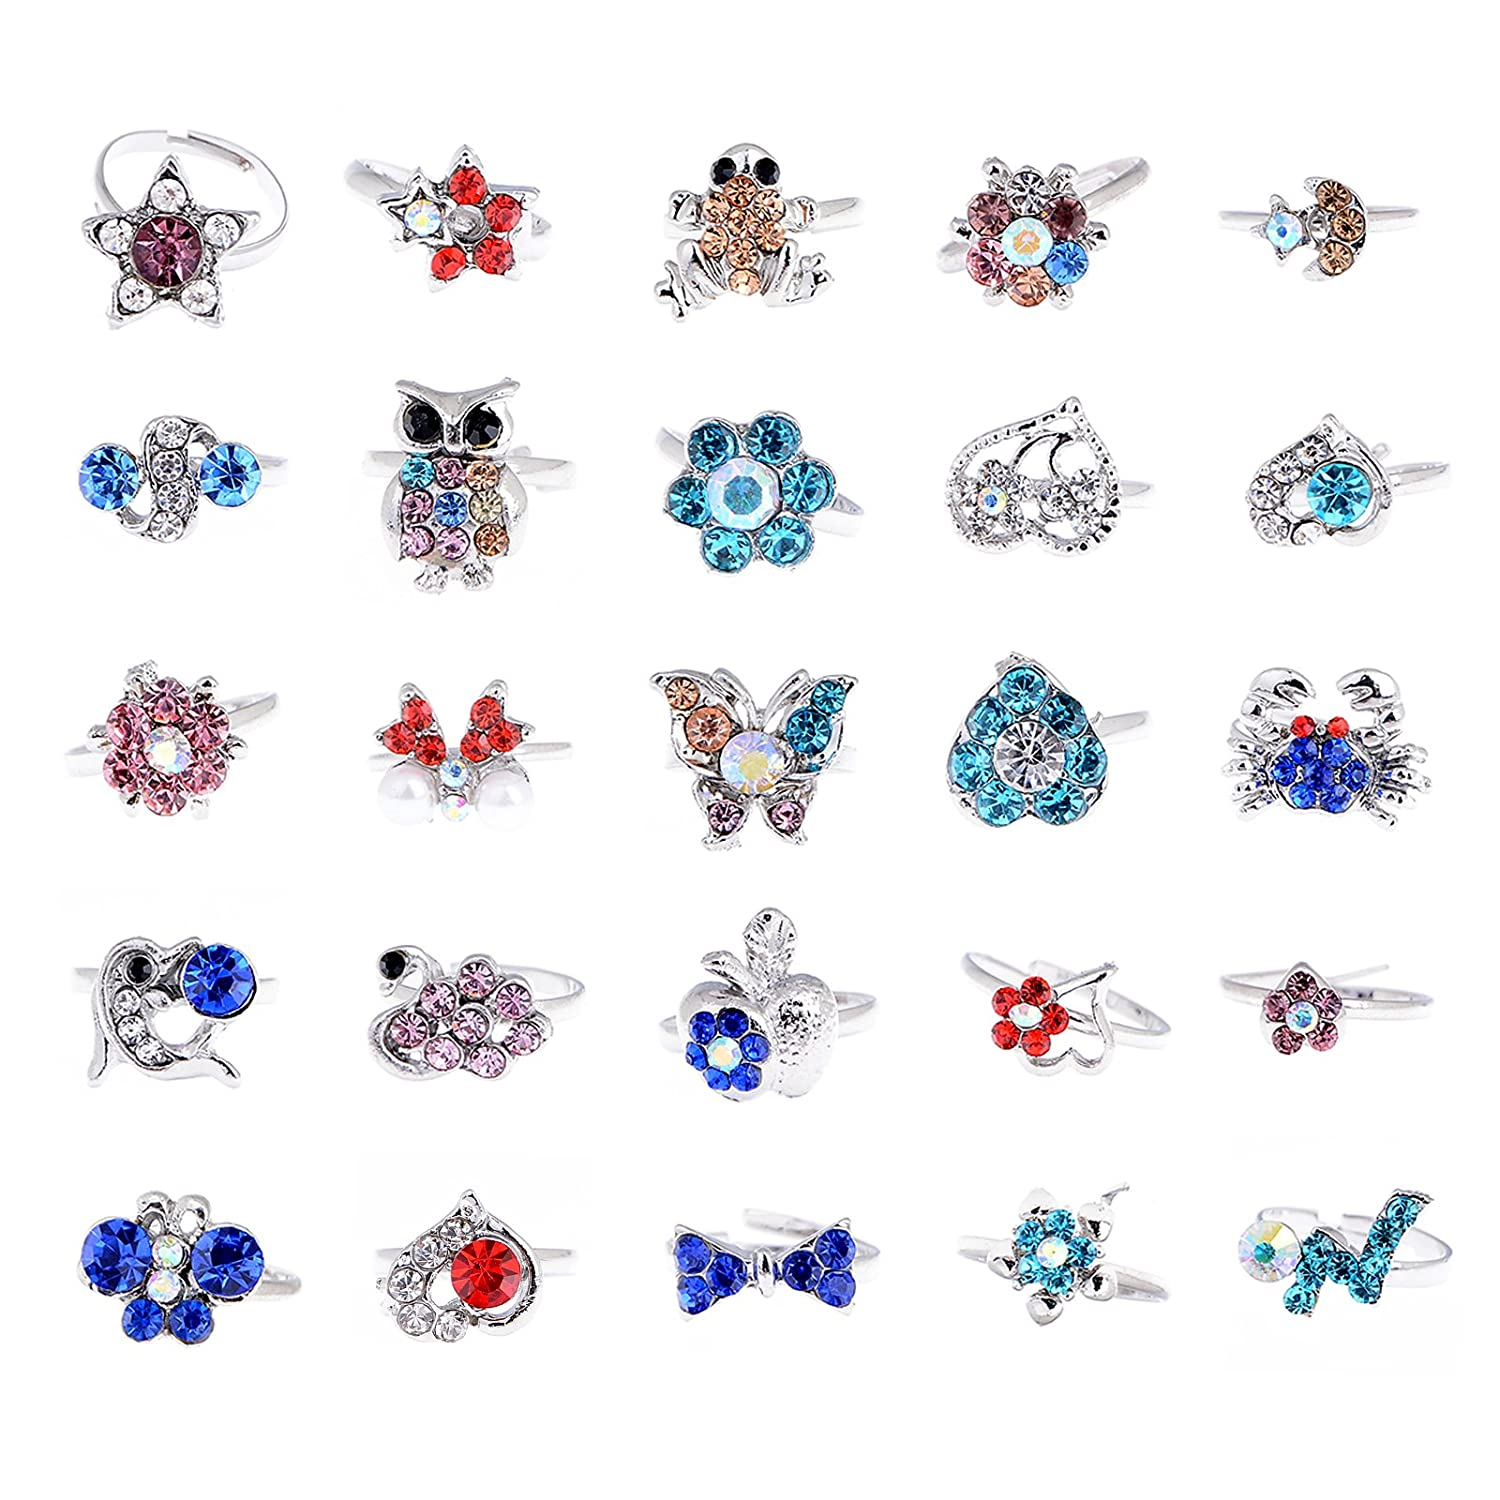 imixlot Lots of 20PCS Children Kids Mixed Cartoon Crystal Adjustable Cute Party Rings Yiwu City Yinuo E-Commercial Business Co. Ltd B013HICVWG_US